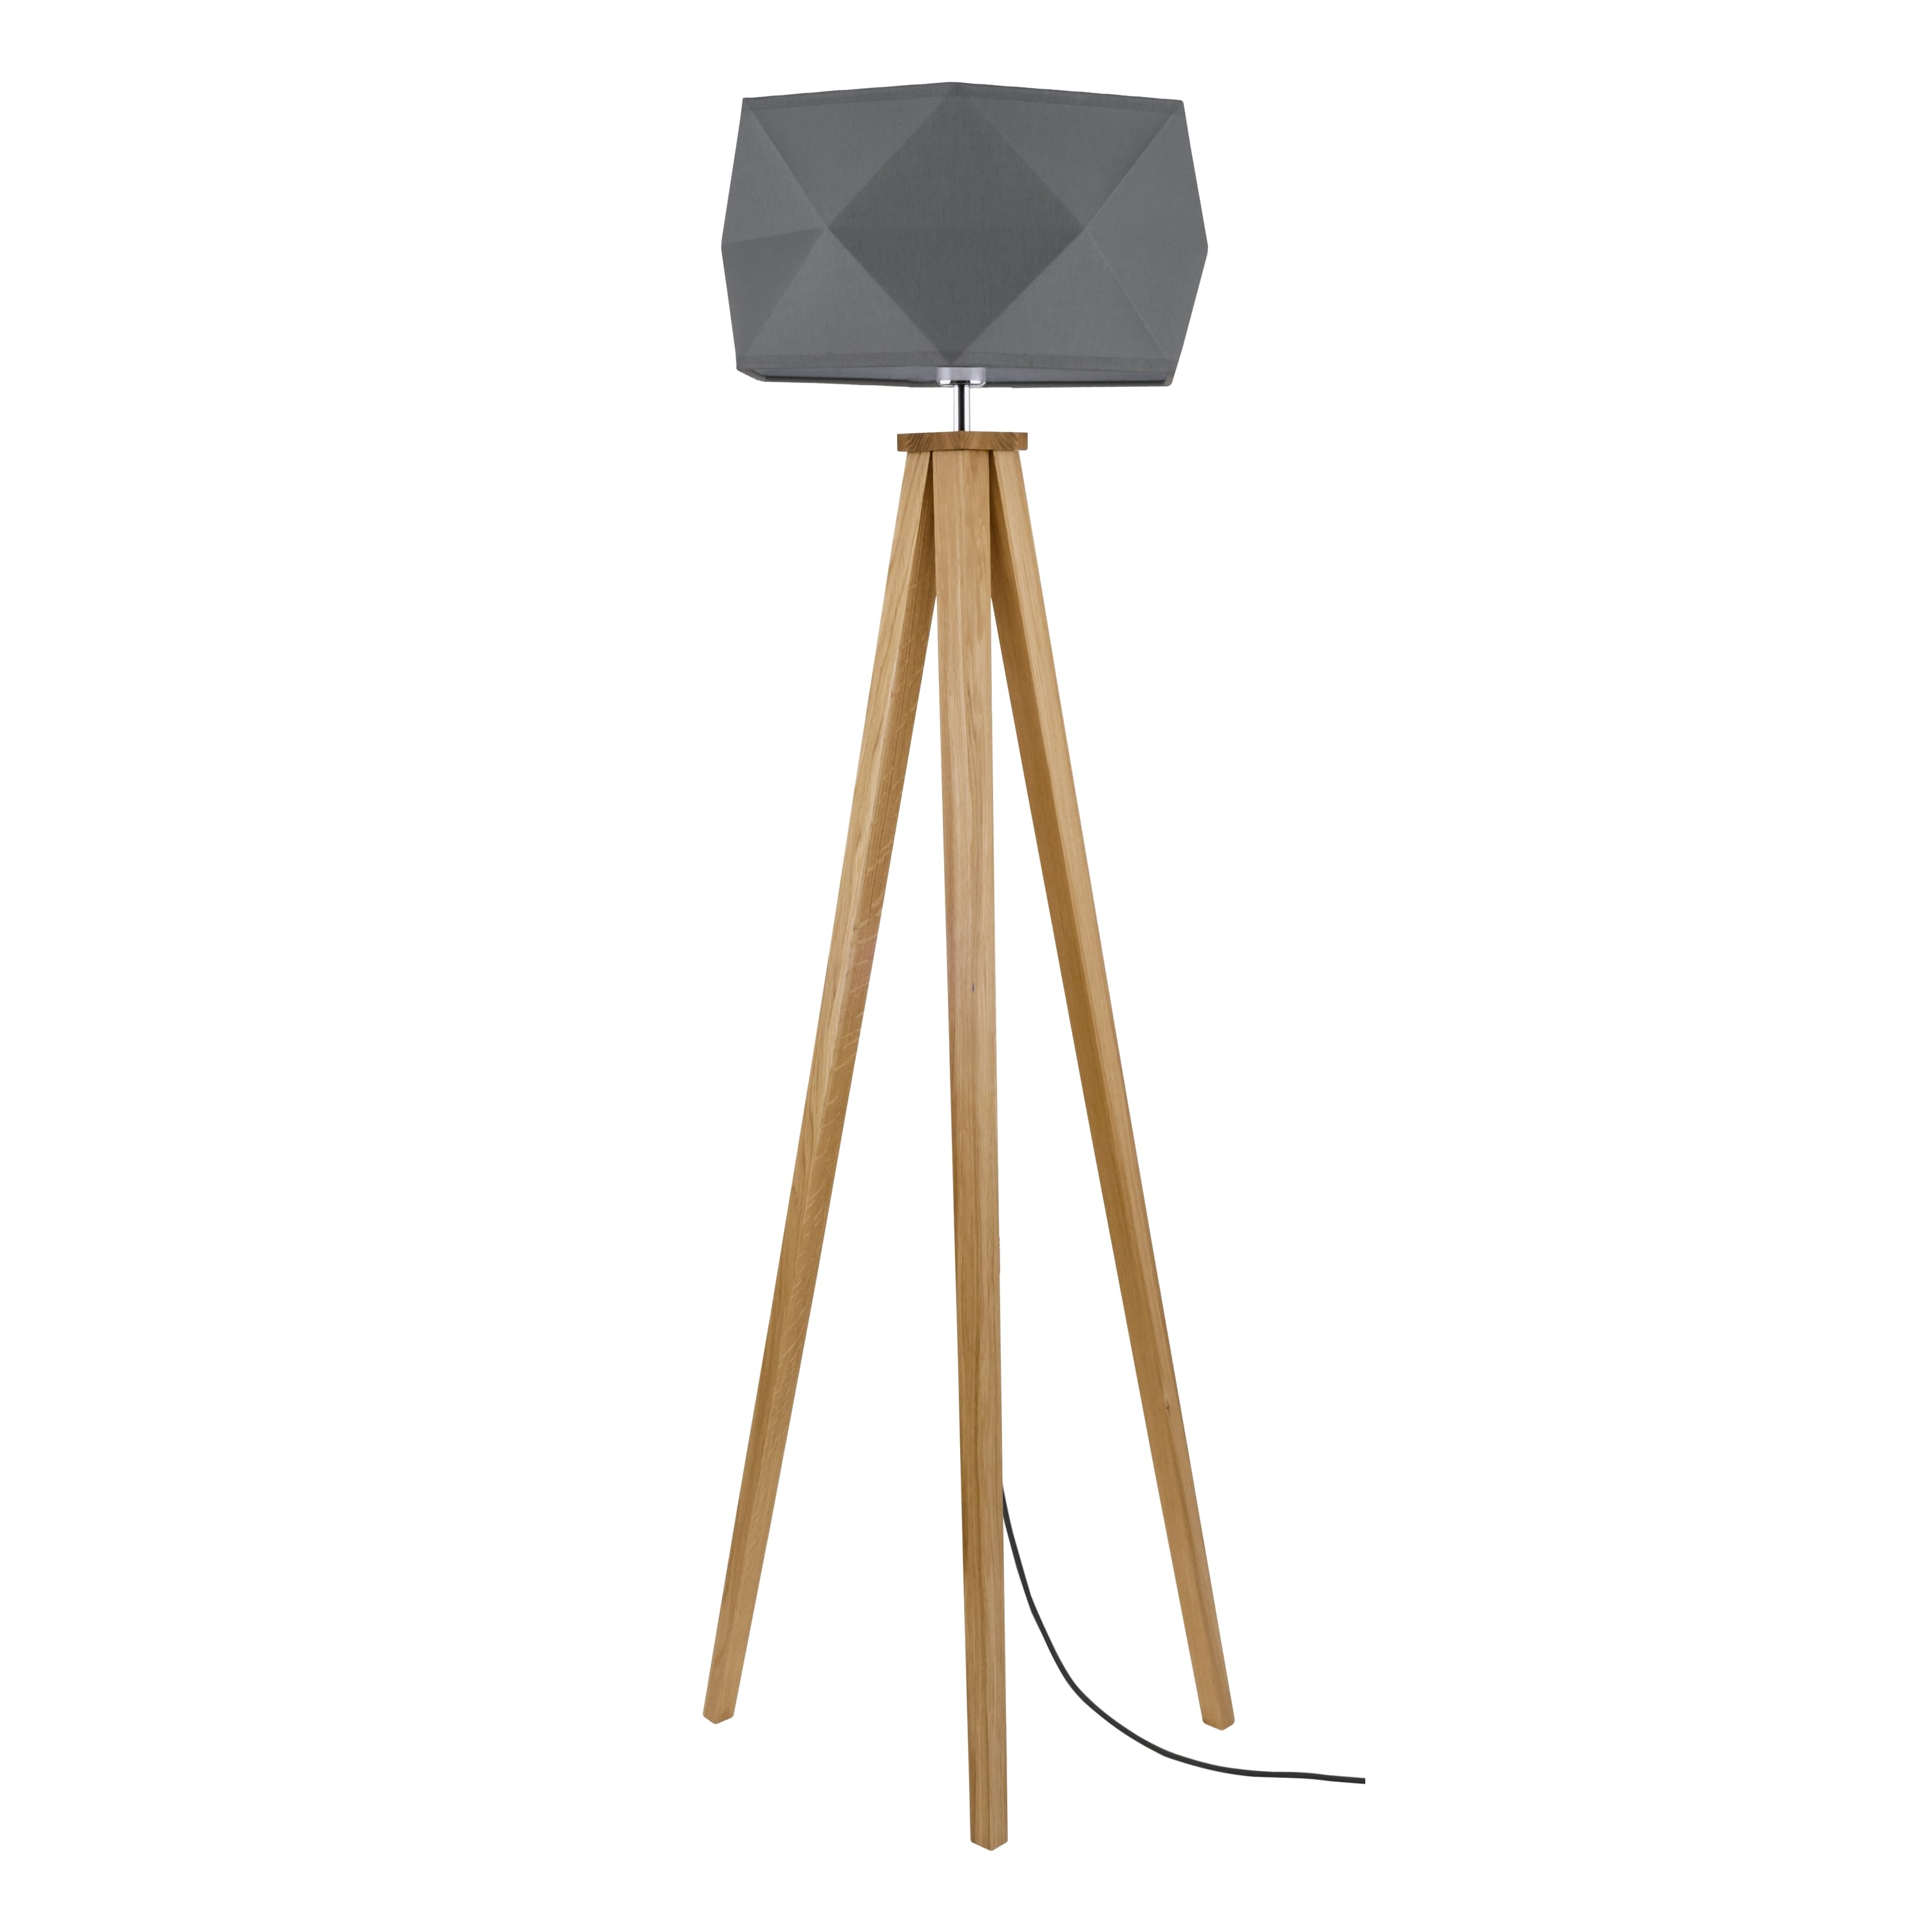 Floor lamp Finja dąb / anthracite / anthracite E27 60W